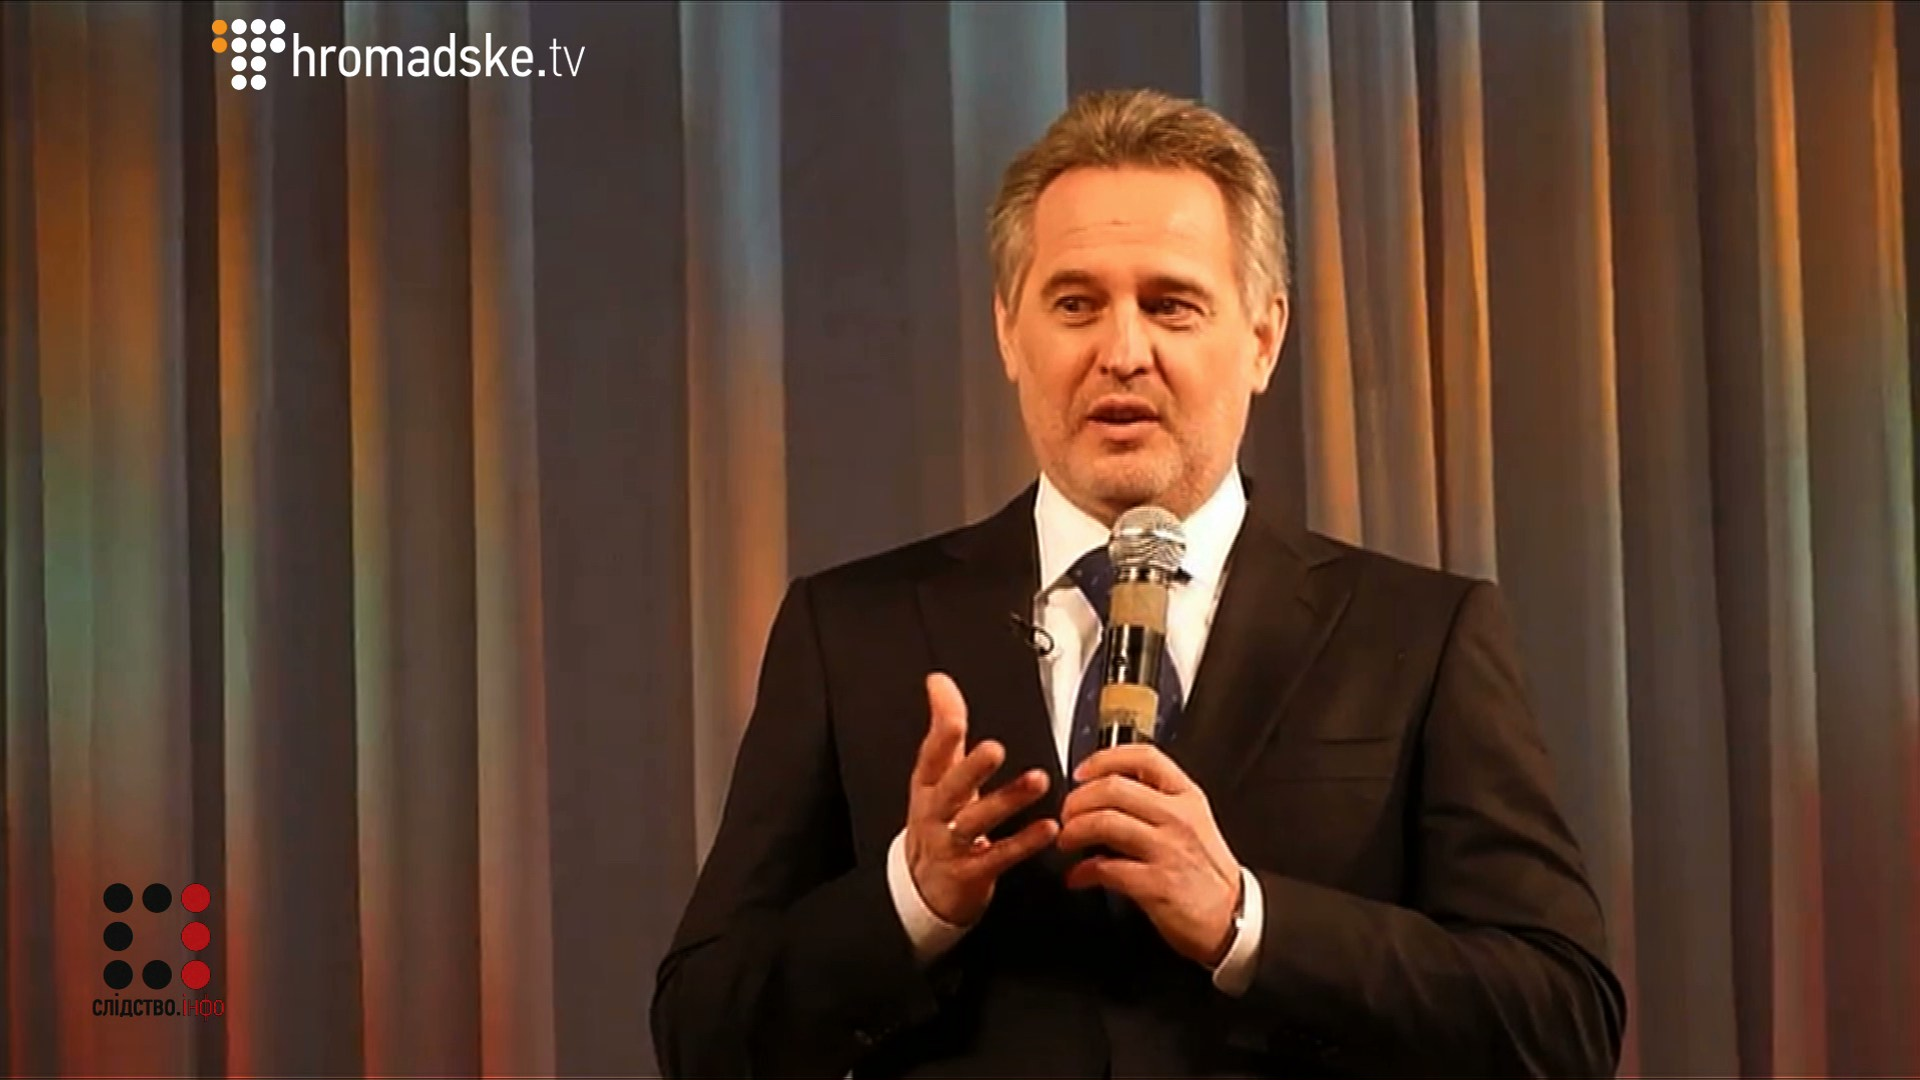 FIRTASH_screen 3